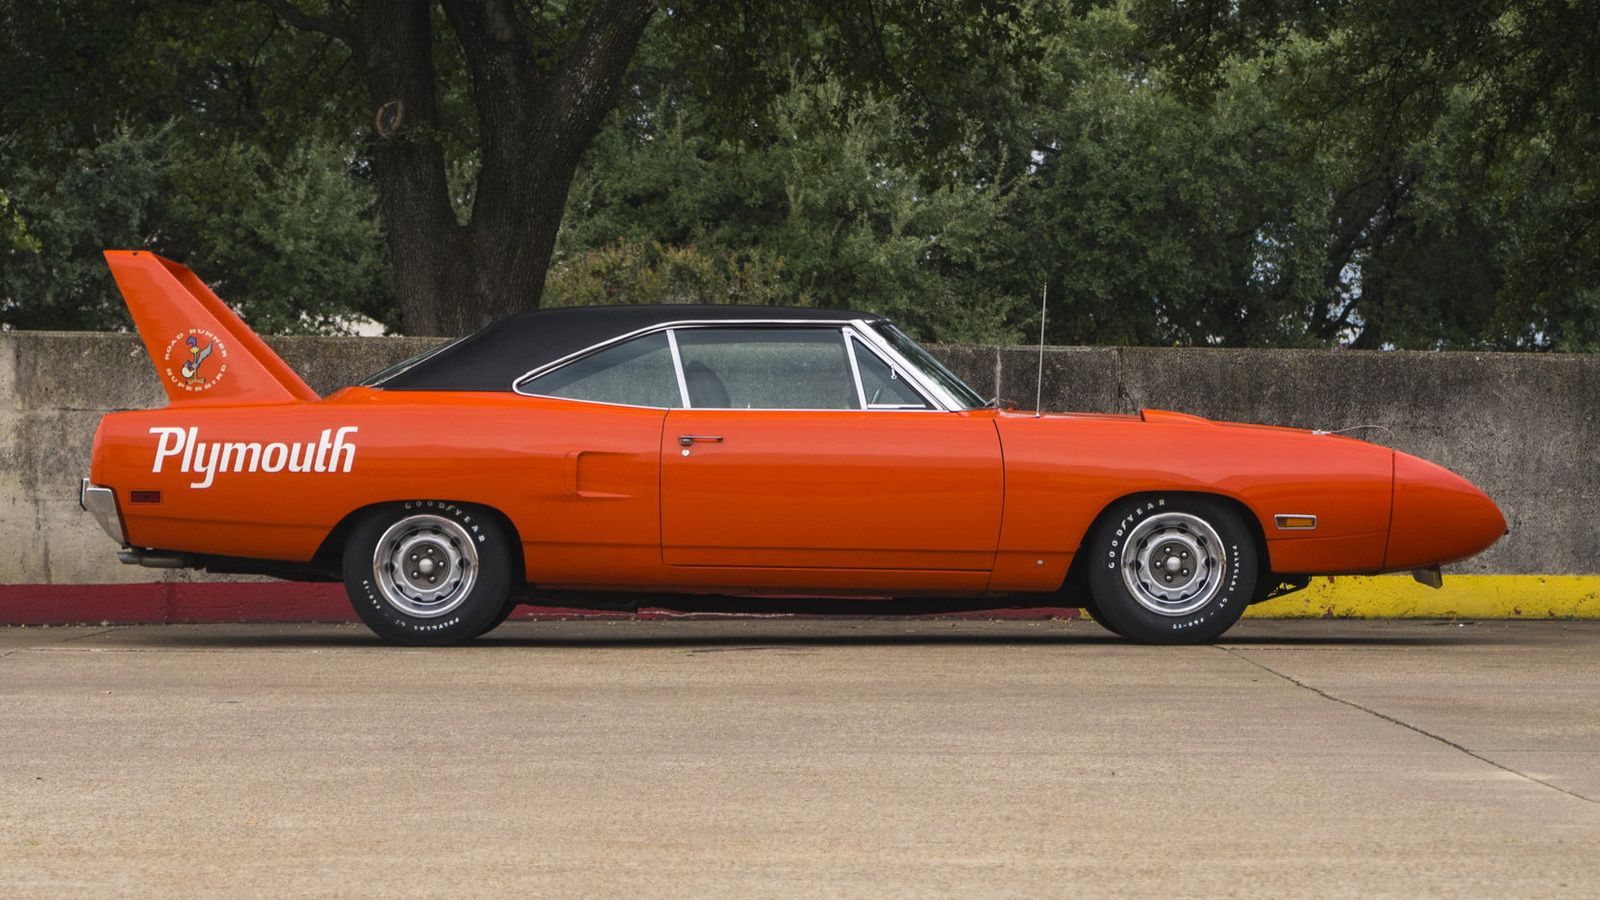 Plymouth Hemi Superbird 1970 in auction (8)